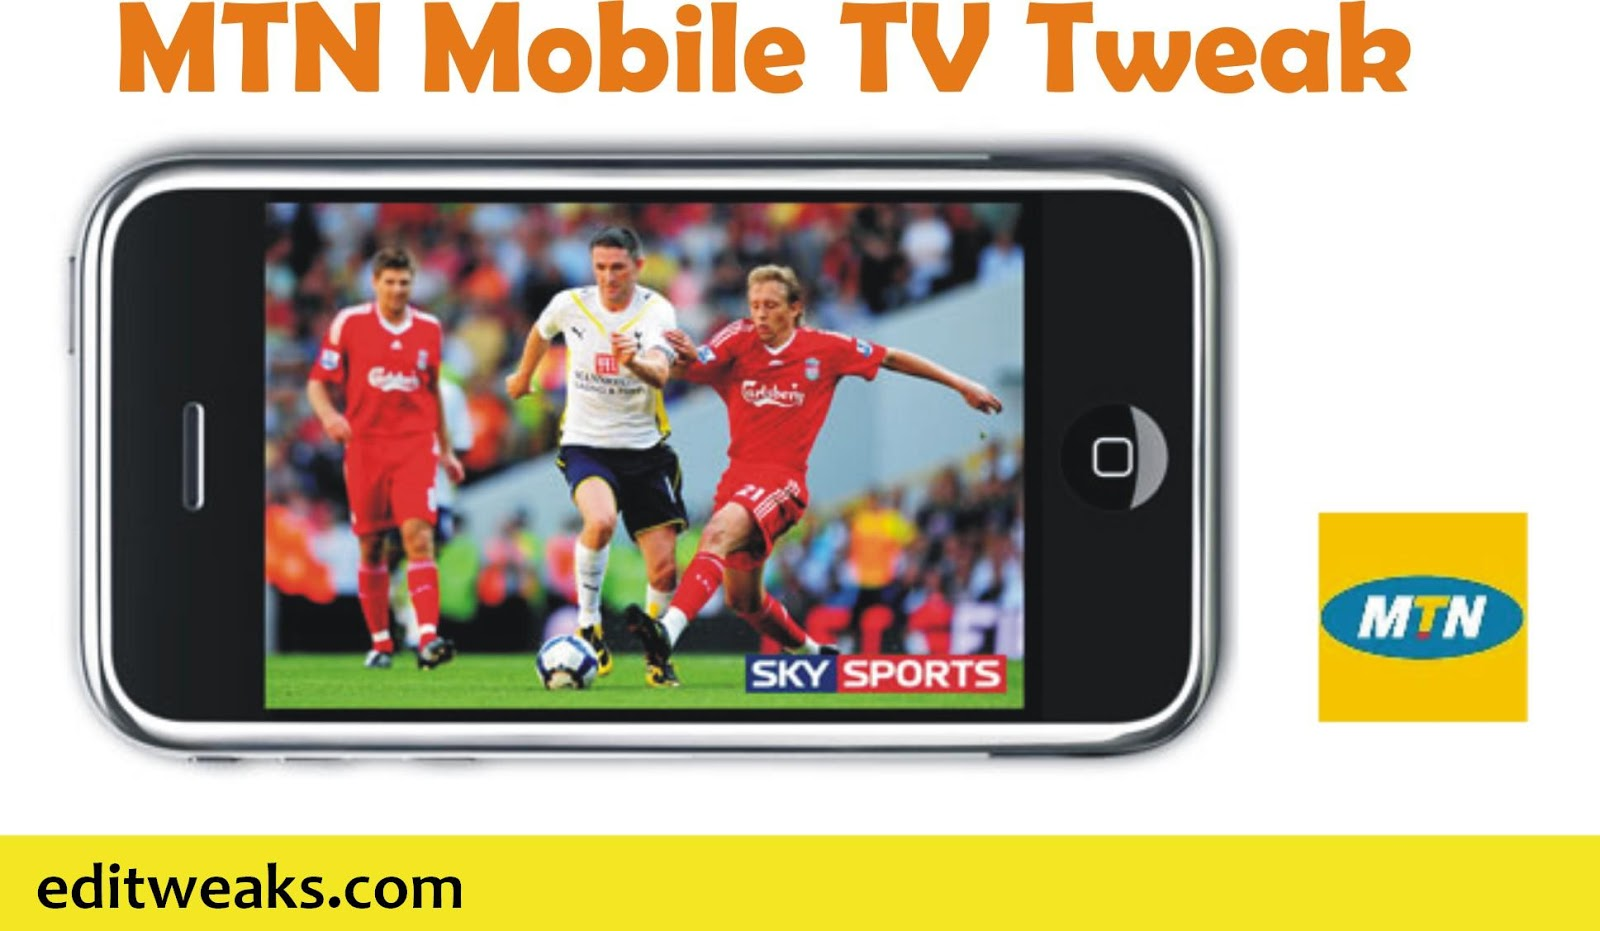 MTN MobileTV Tweak - Get 500MB to Browse and Download For Mobile & PC ...